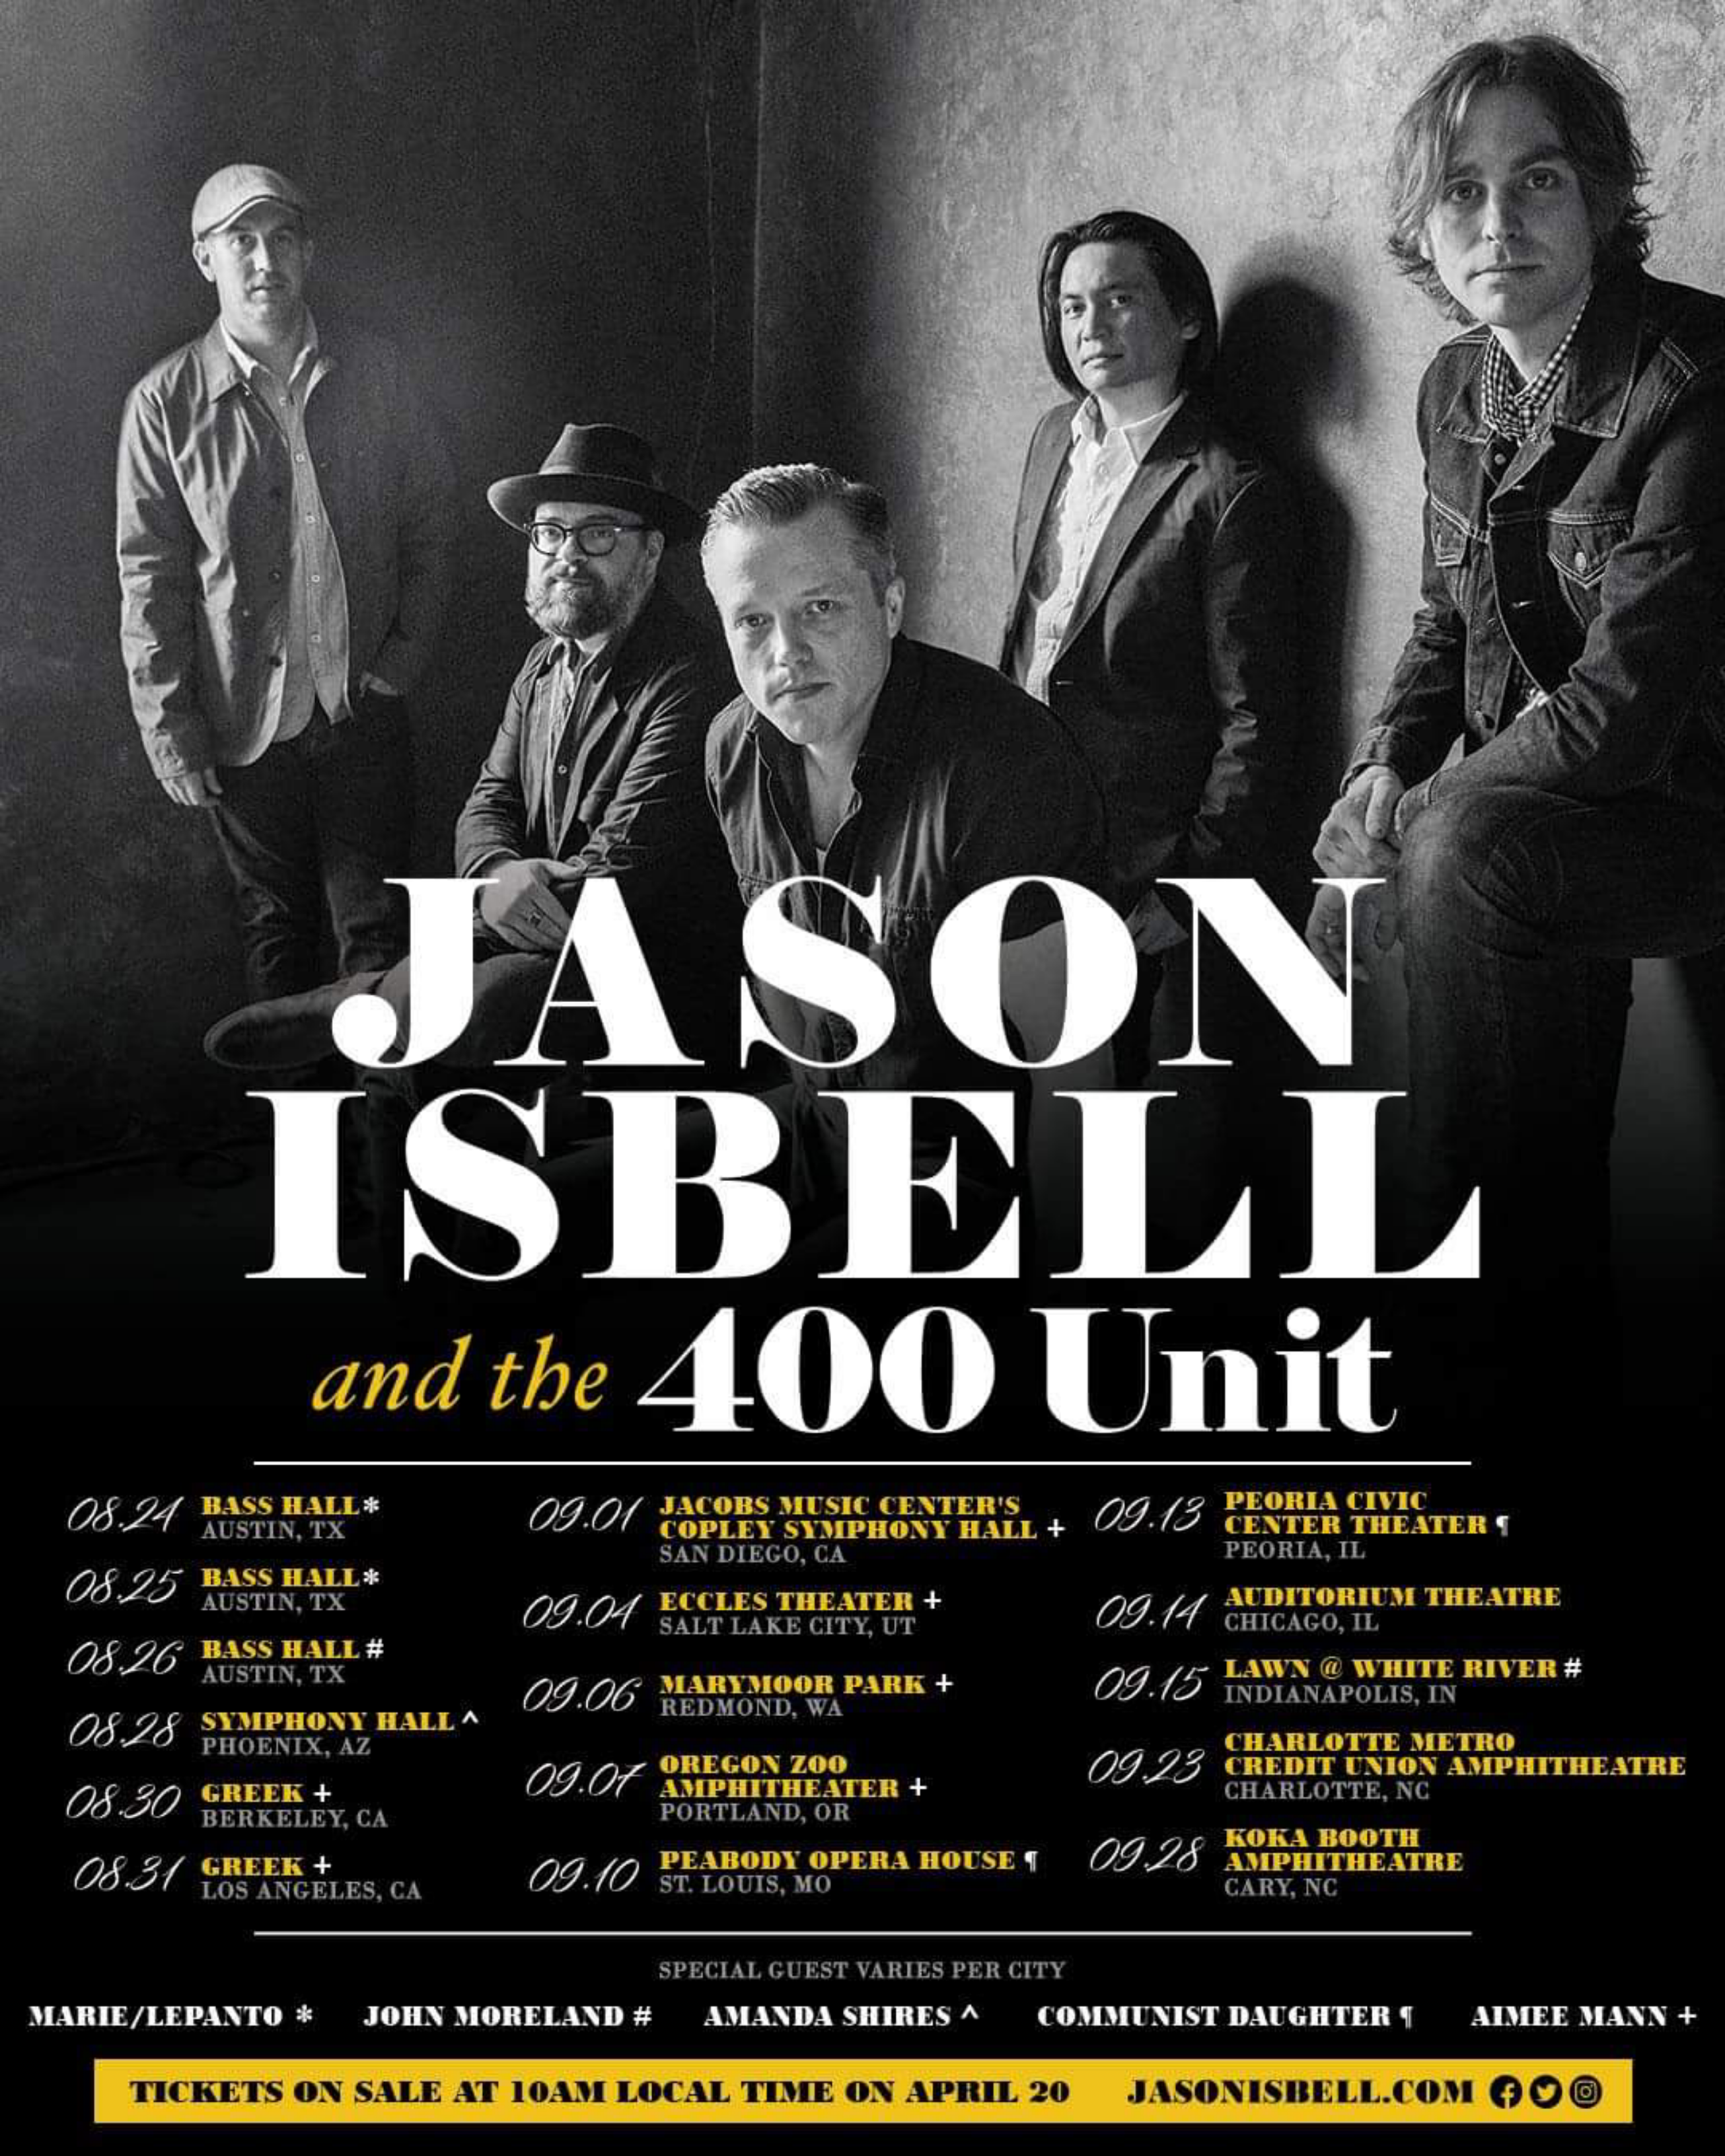 Jason Isbell and The 400 Unit official 2018 tour dates poster